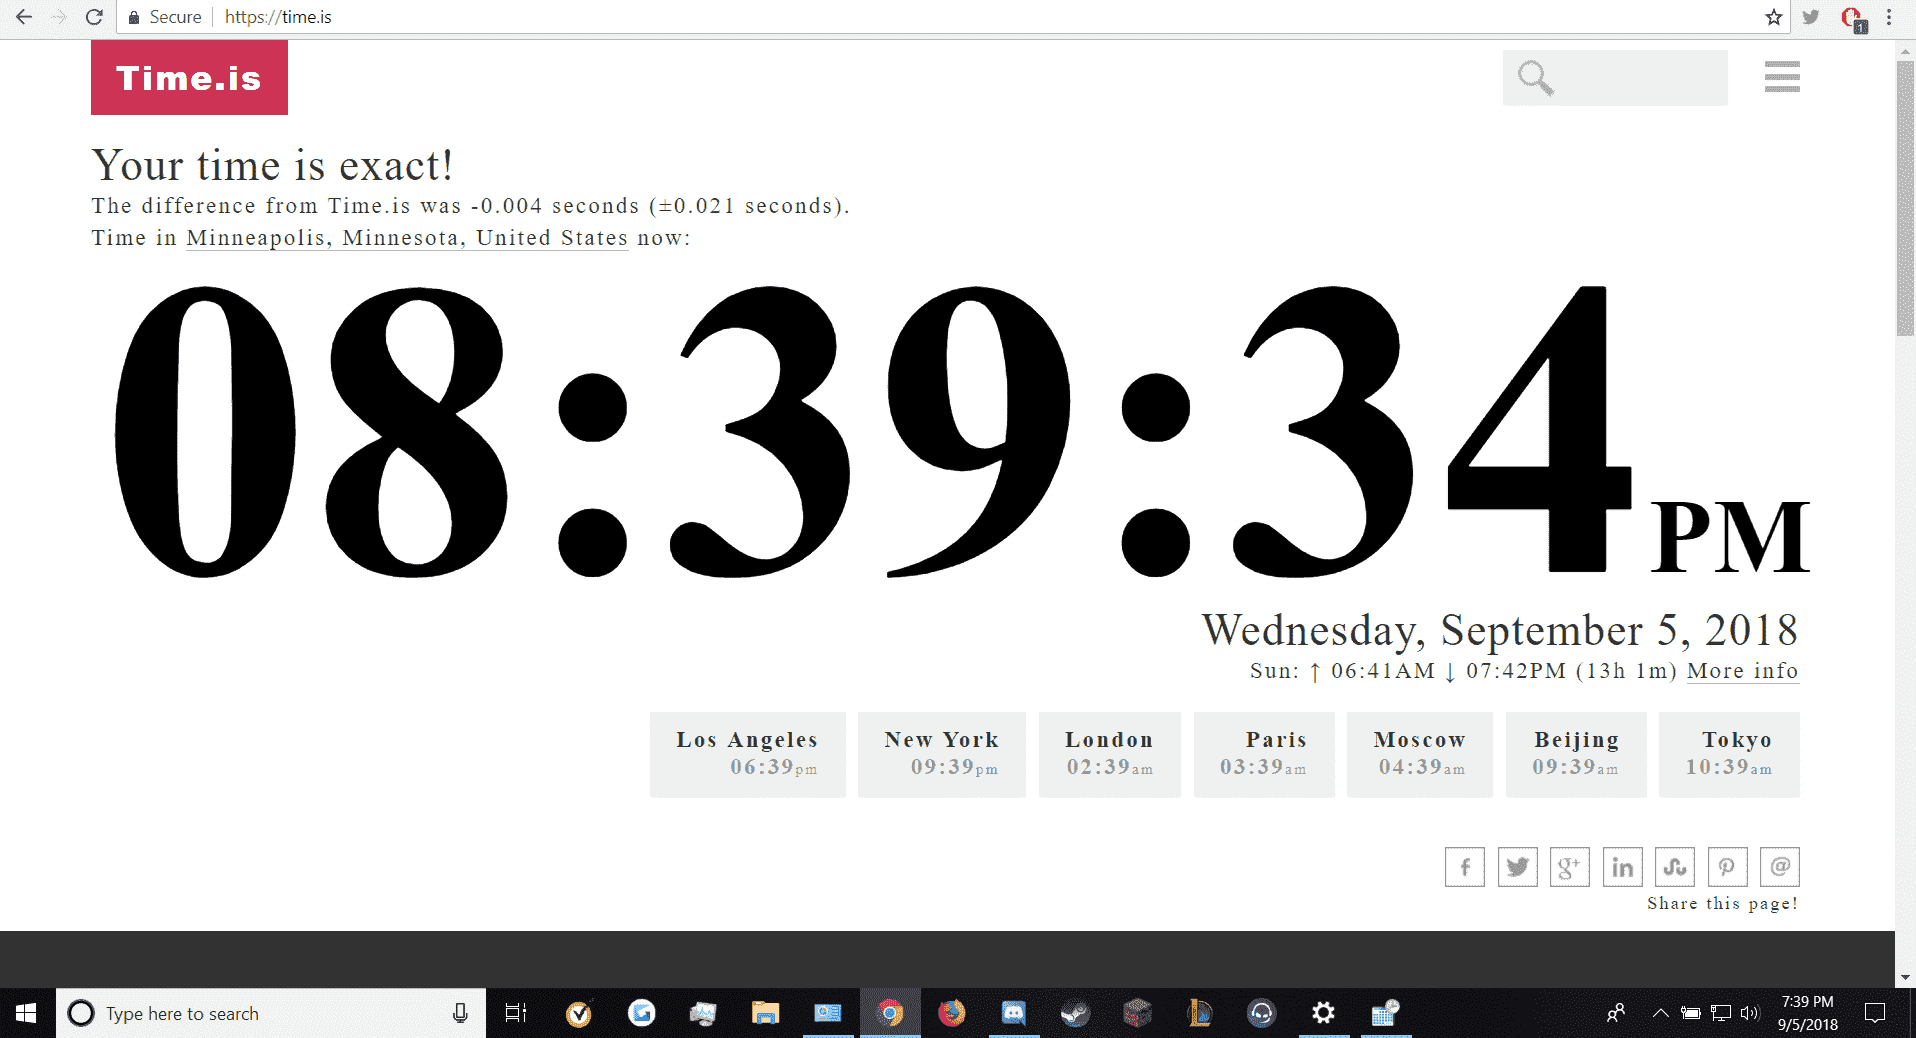 """I am unable to select the """"Adjust Daylight Saving Time Automatically"""" switch, and more. a6b16be1-c9f3-4499-99f7-9b5663c1abef?upload=true.png"""